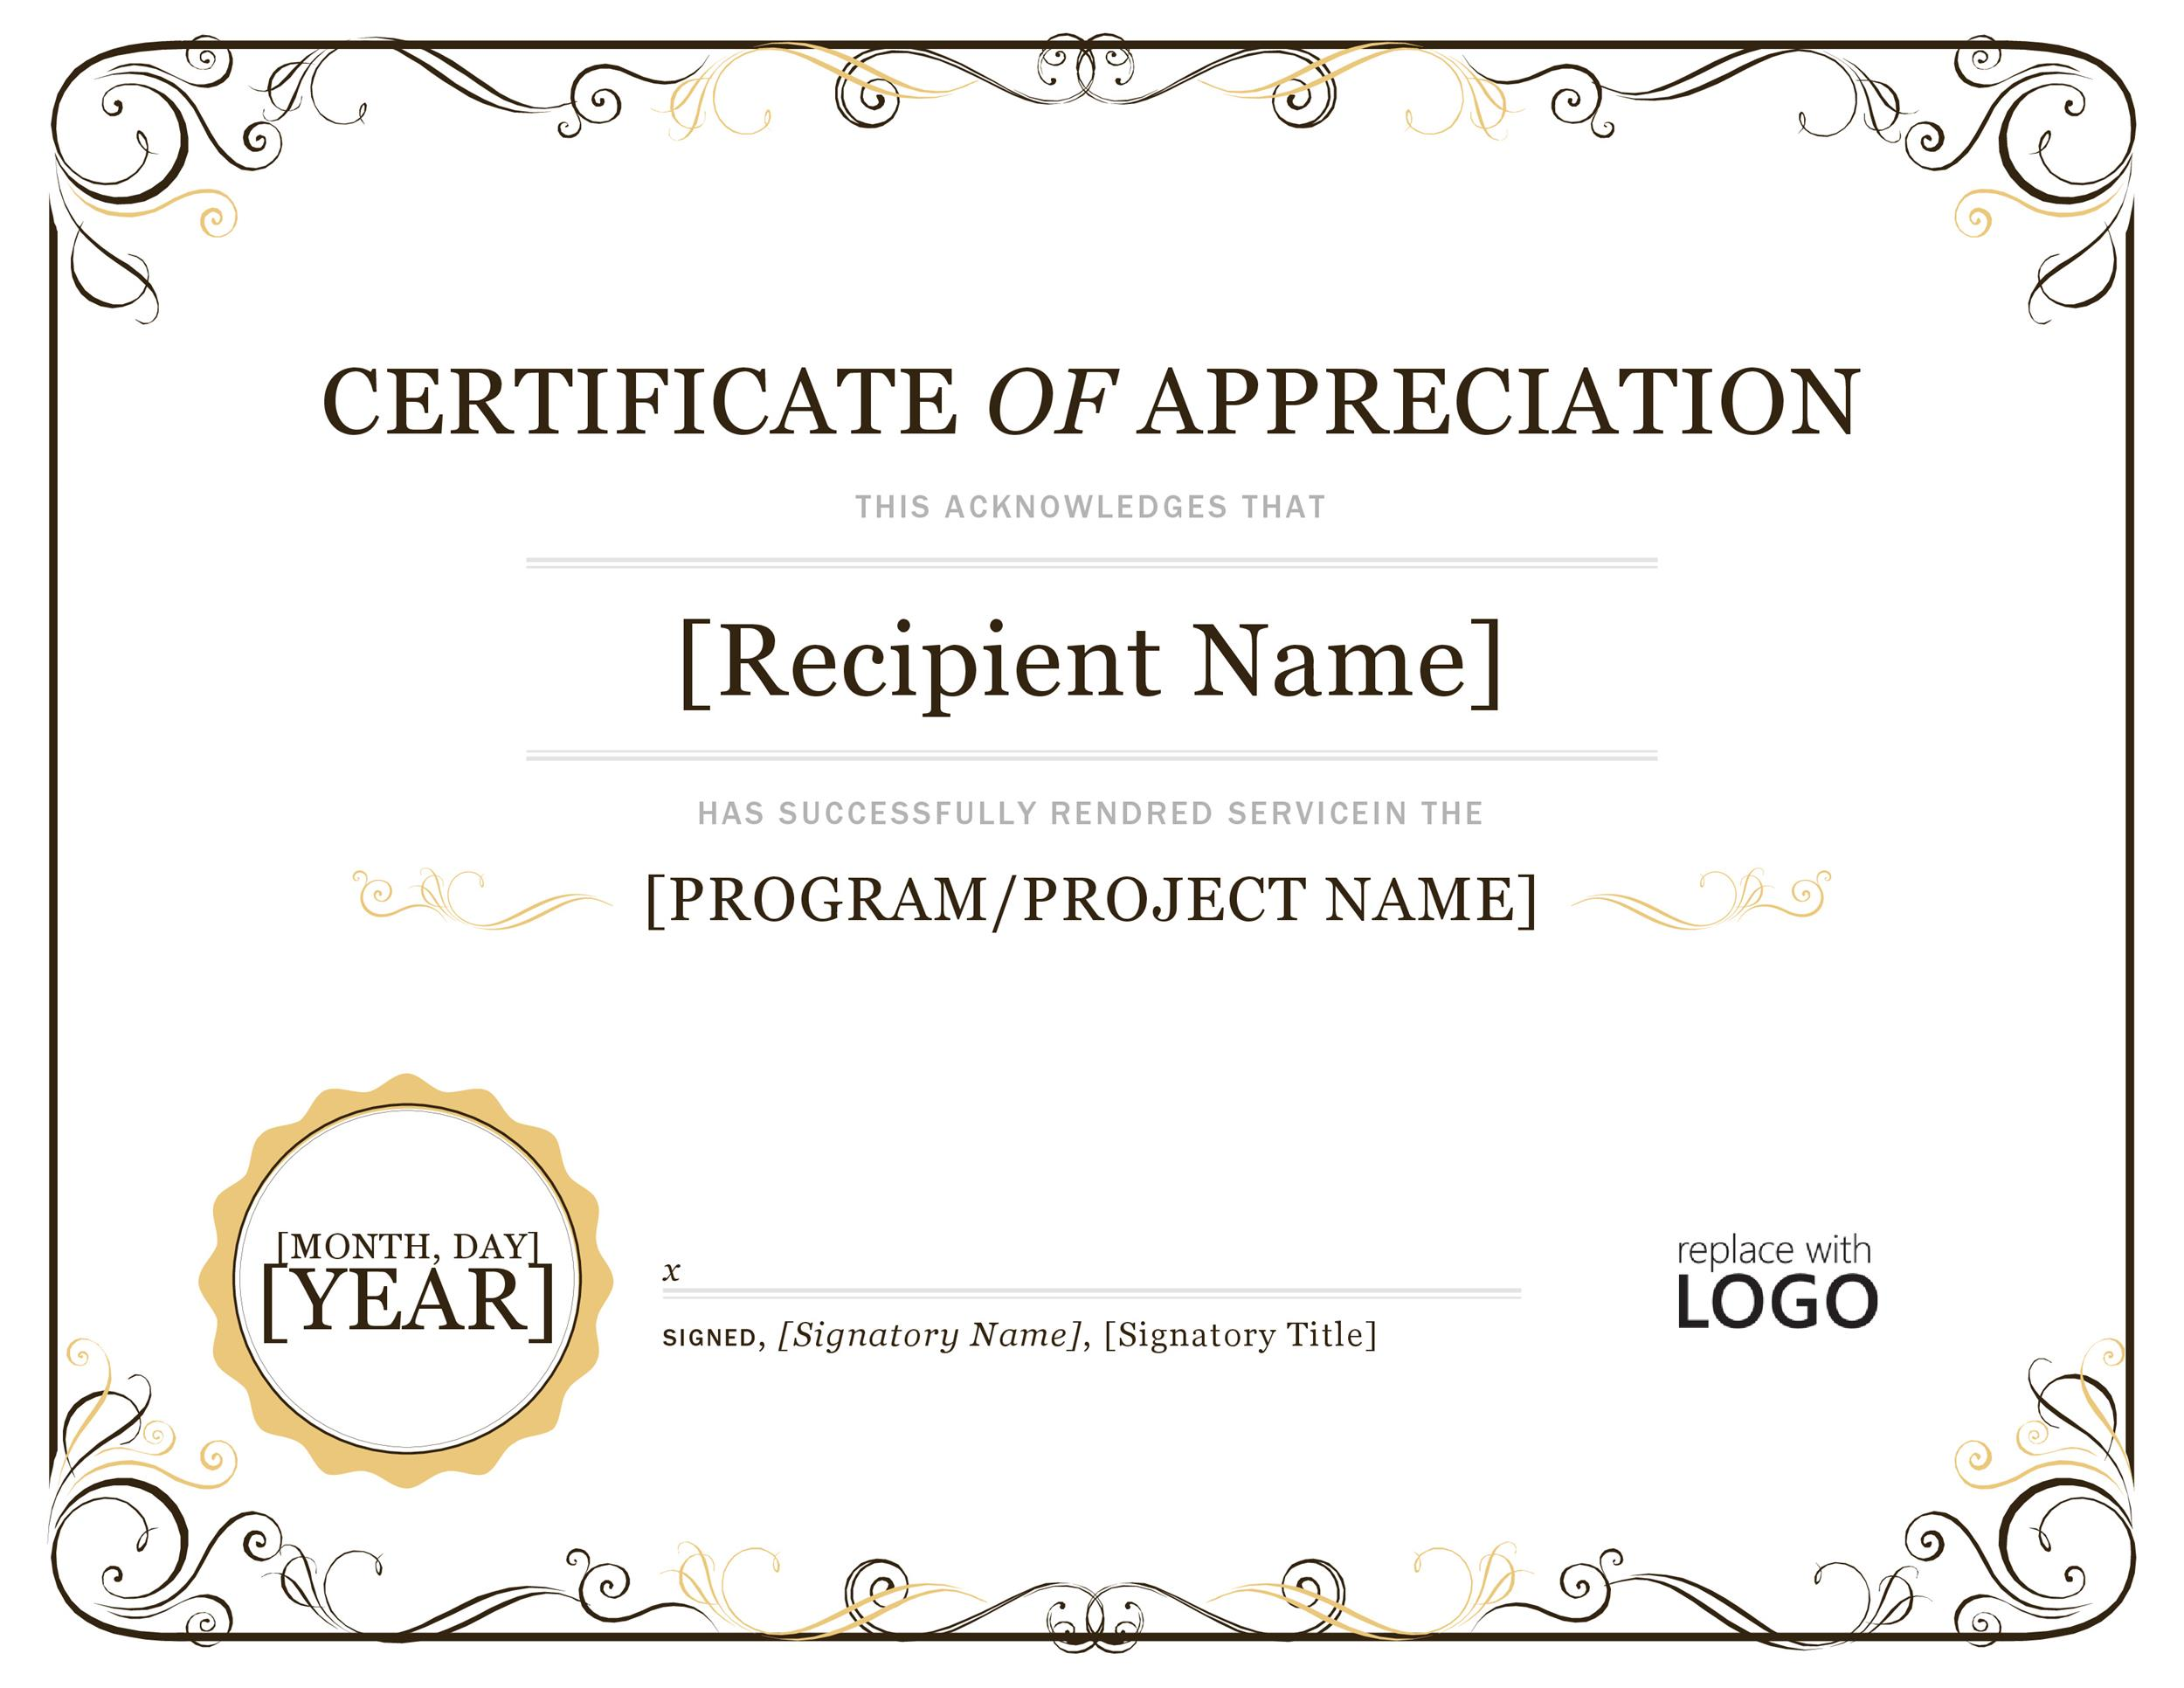 rotary certificate of appreciation template - 30 free certificate of appreciation templates and letters